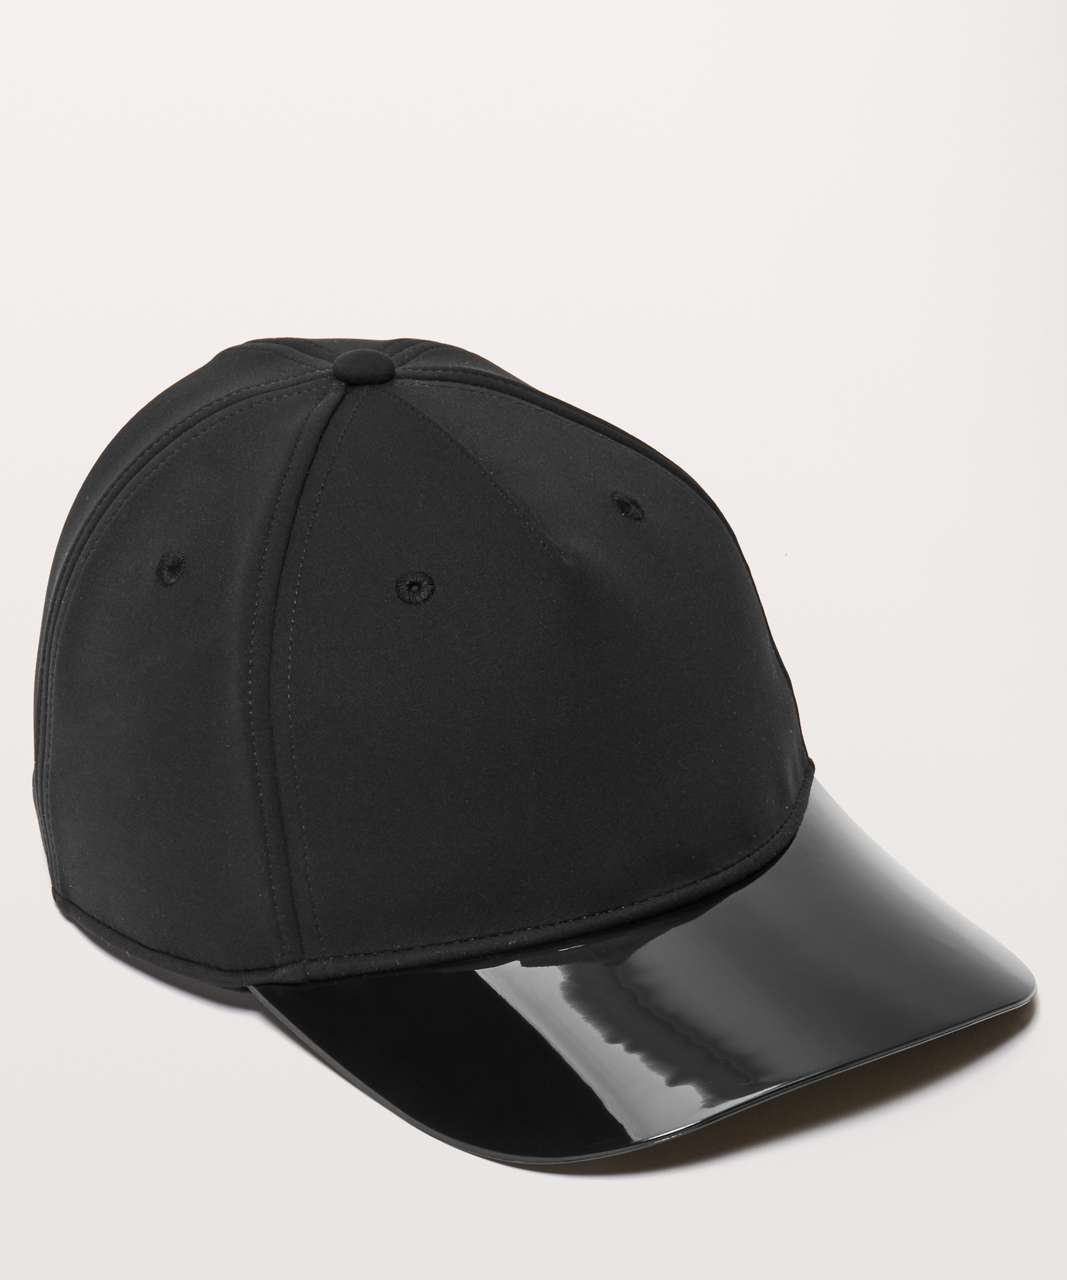 Lululemon Baller Hat *Translucent Brim - Black